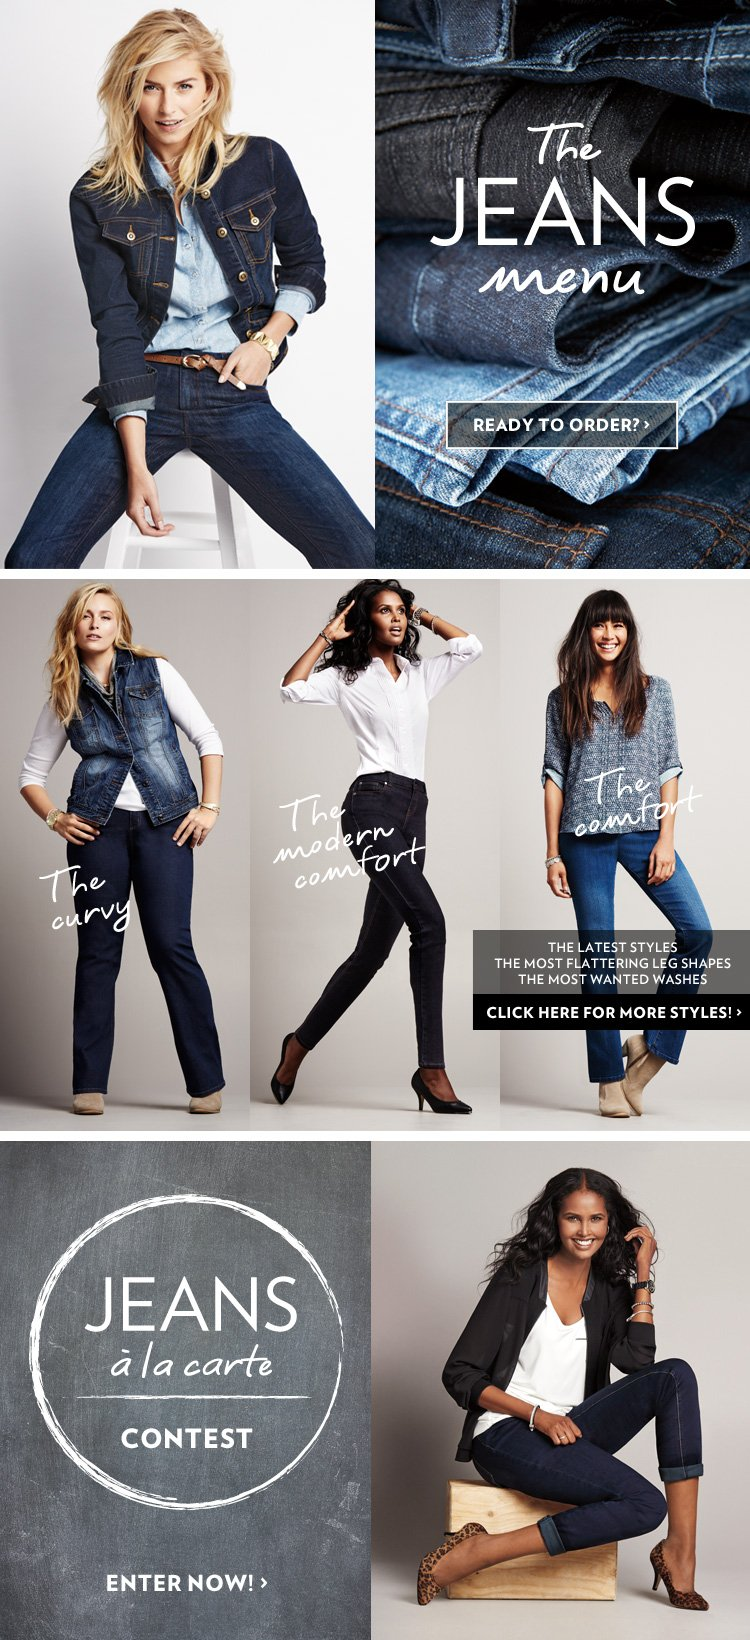 The Jeans Menu | The Latest Styles, The Most Flattering Leg Shapes, The Most Wanted Washes. Ready To Order?